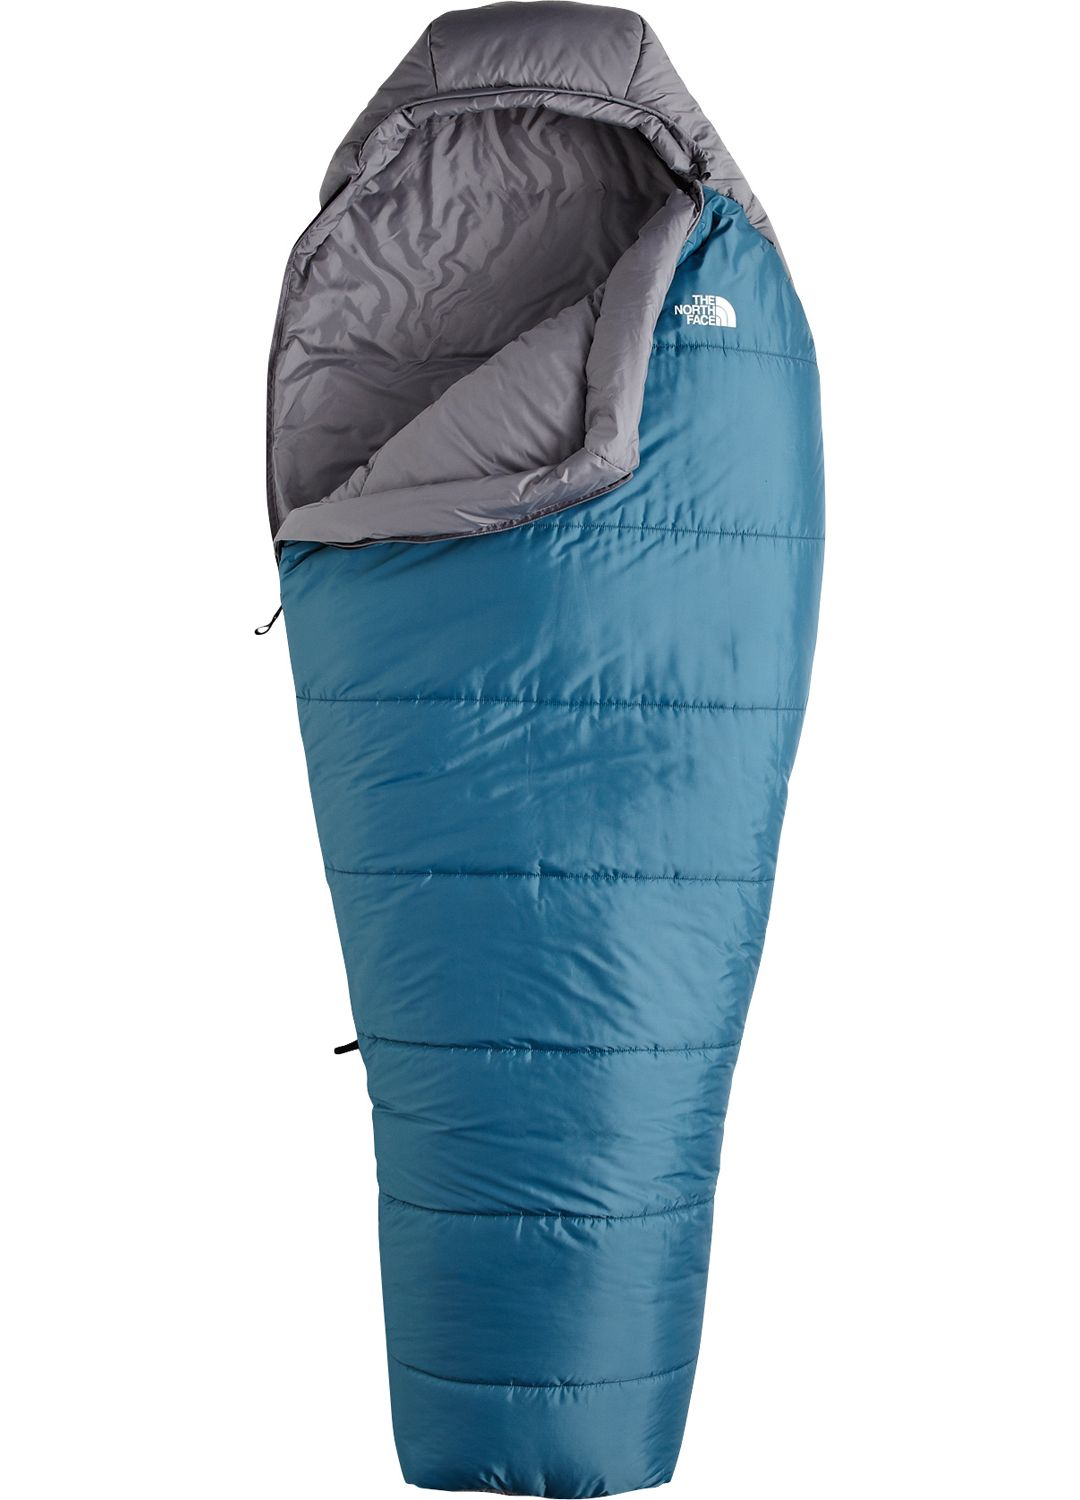 The North Face Wasatch 20 Sleeping Bag